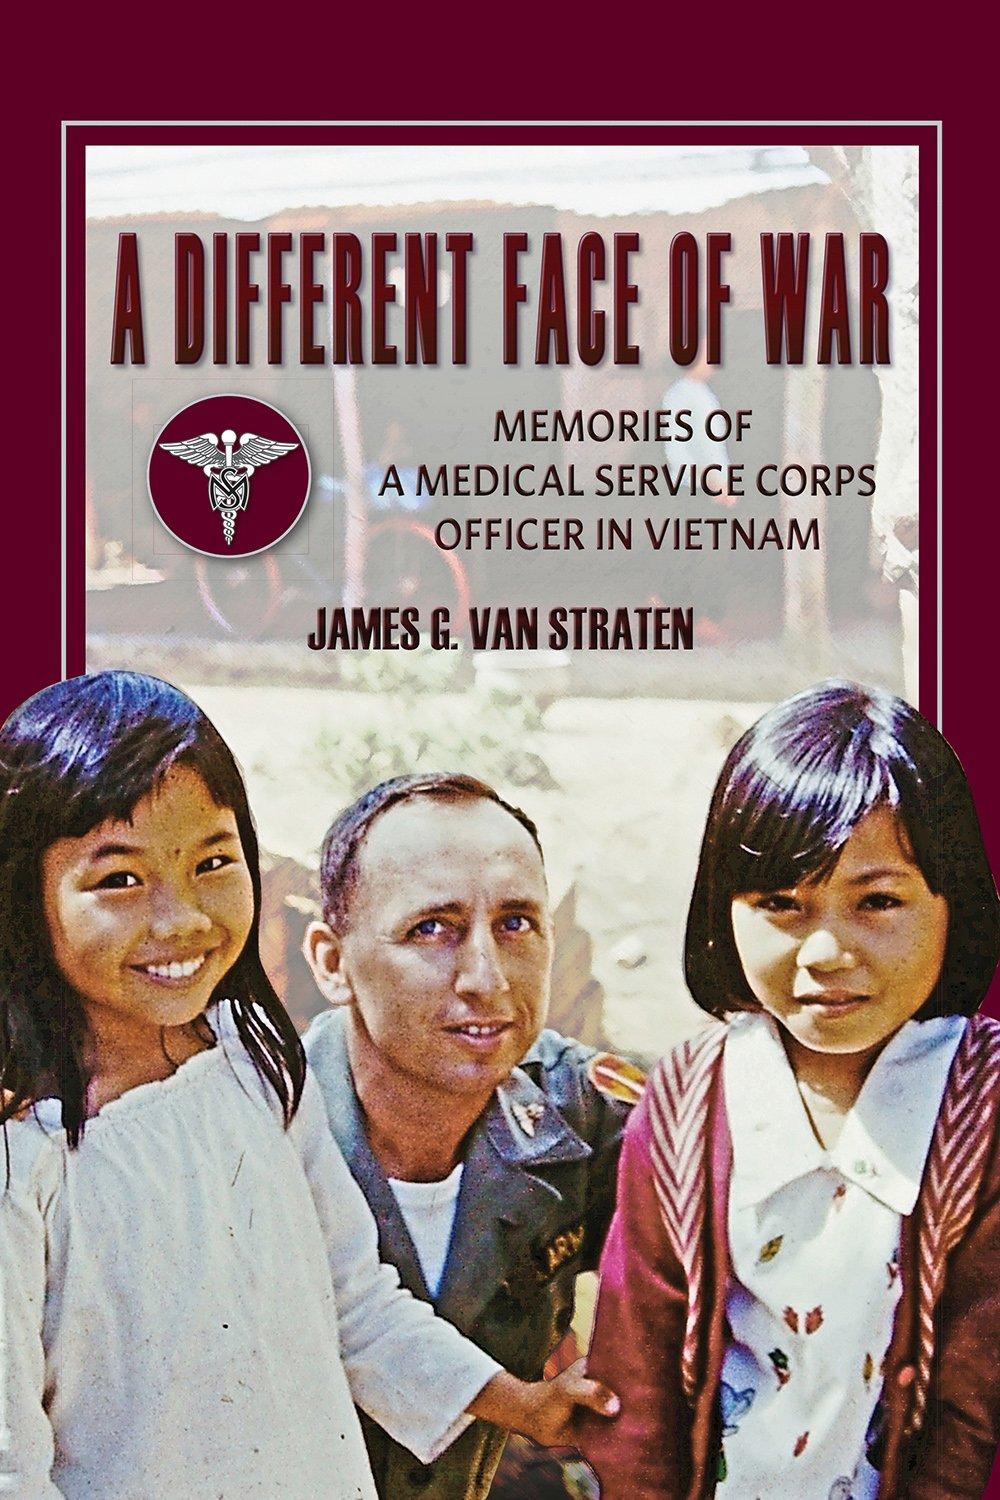 A Different Face of War: Memories of a Medical Service Corps Officer in Vietnam (North Texas Military Biography and Memoir Series) ebook